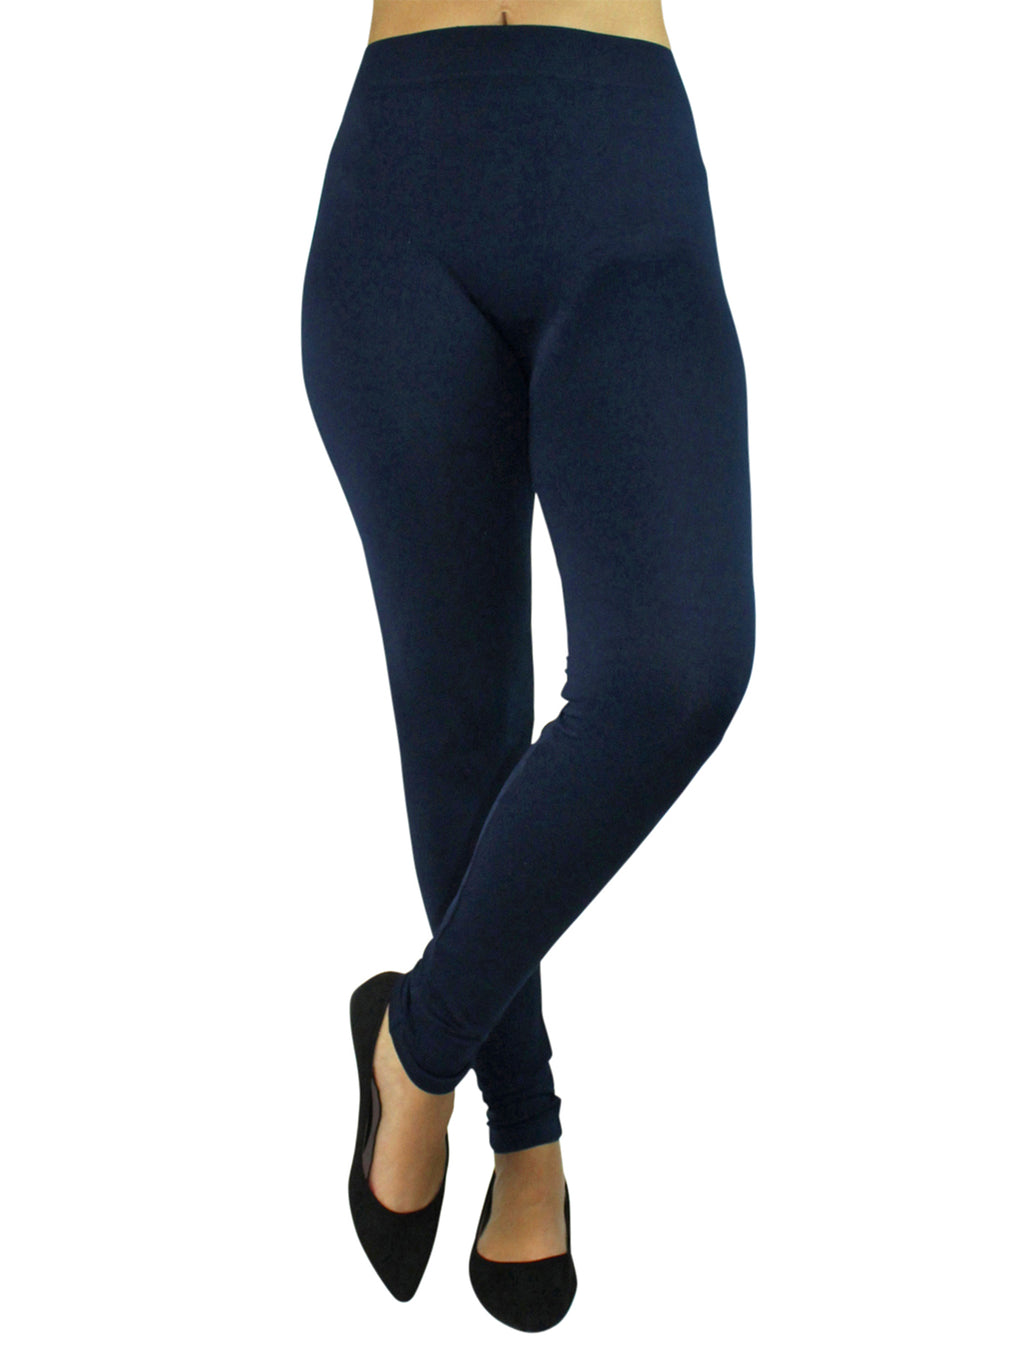 Full Length Seamless Leggings For Women